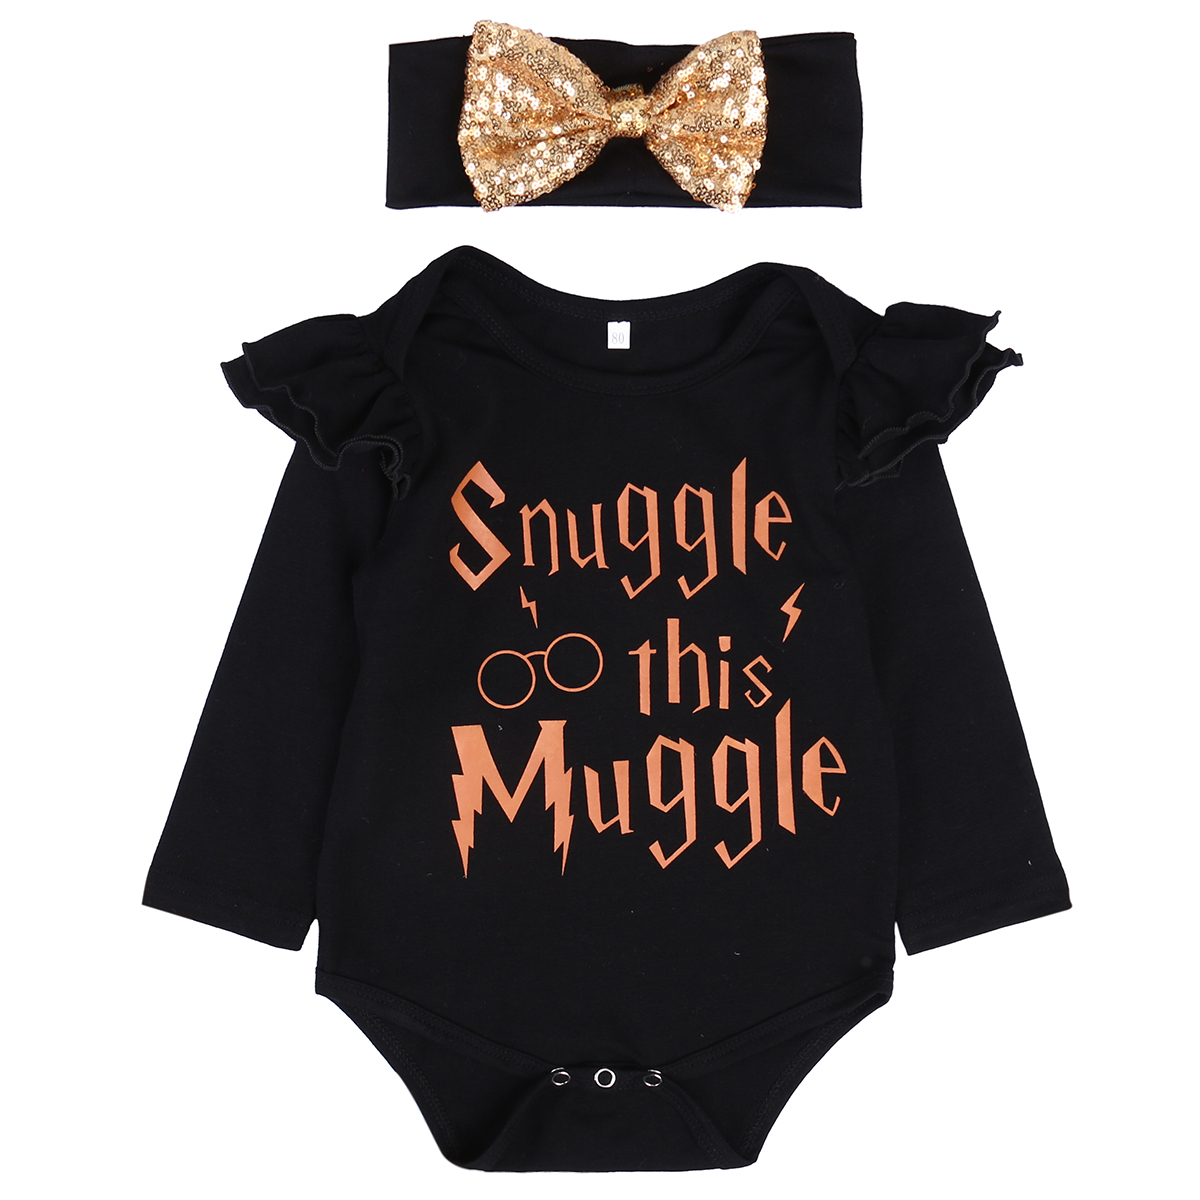 Snuggle this Muggle Newborn Baby Girls Romper Clothes Long Sleeve Infant Bebes Inspired Onesies Outfit Sunsuit вибромассажер мини snuggle bug фиолетовый